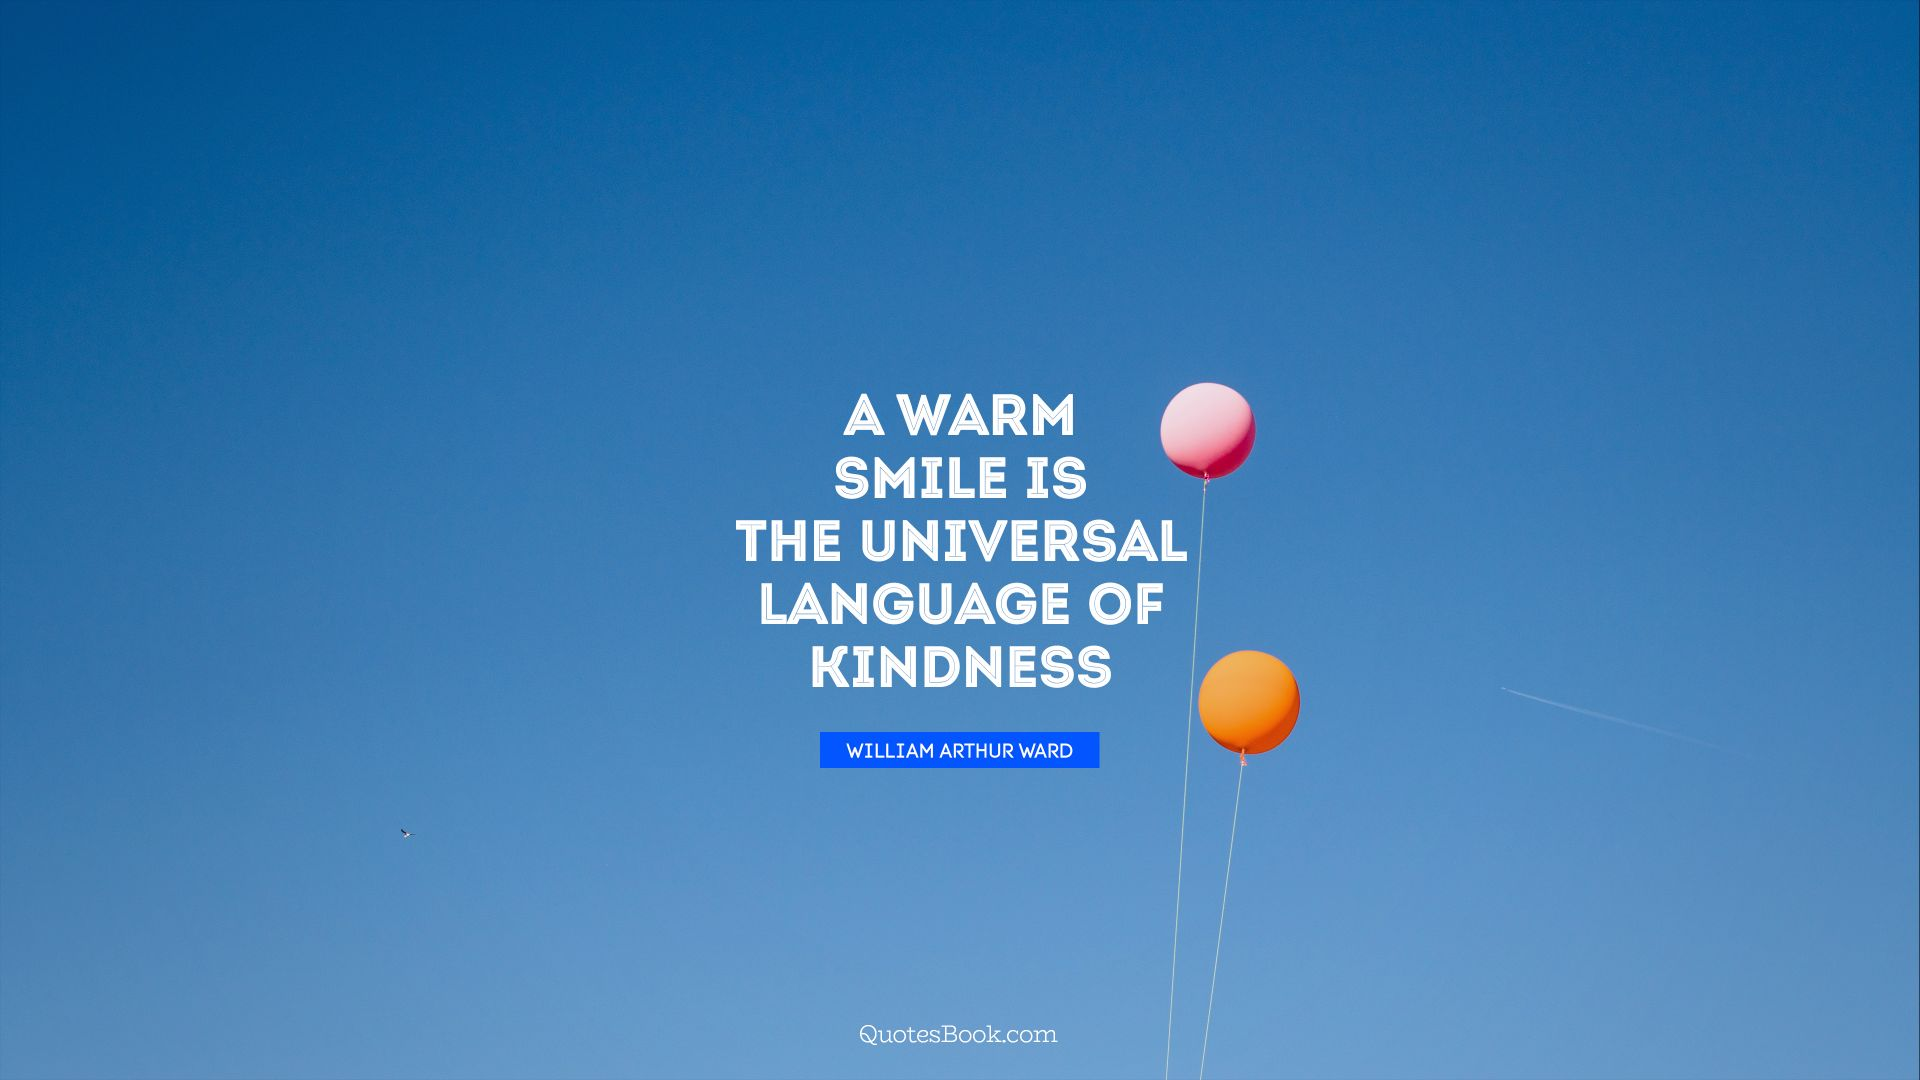 A warm smile is the universal language of kindness. - Quote by William Arthur Ward